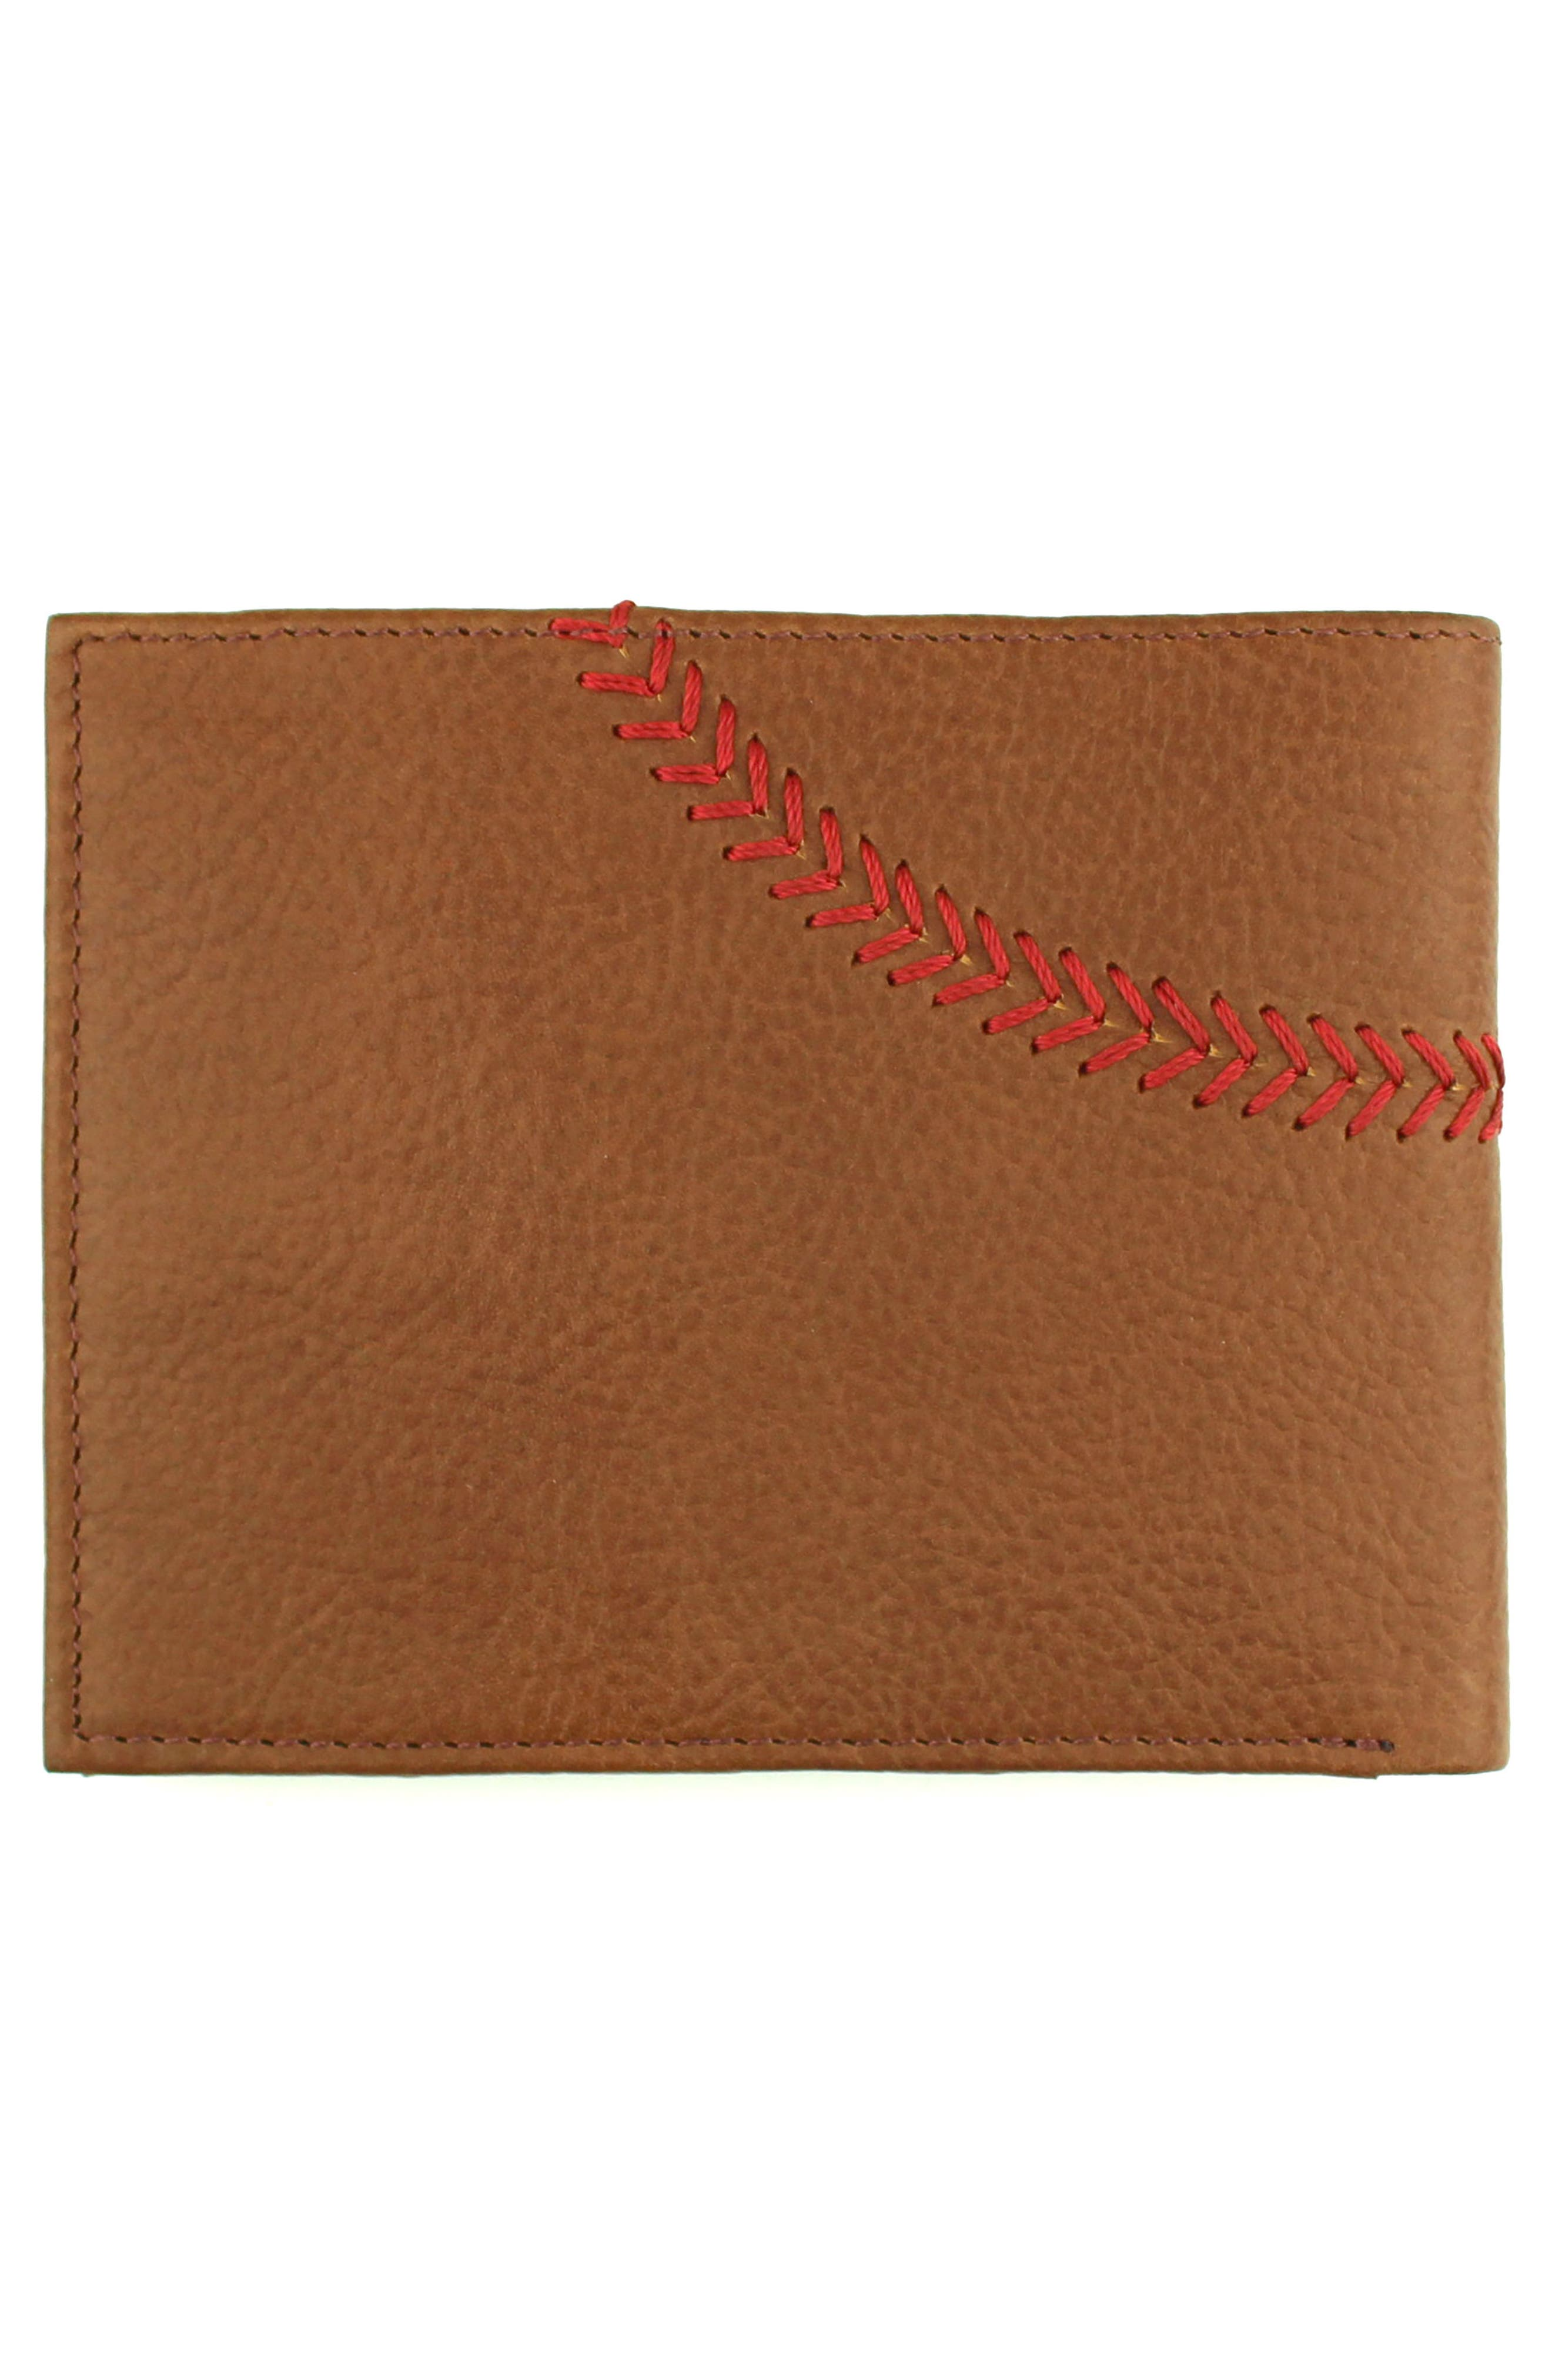 Home Run Bifold Leather Wallet,                             Alternate thumbnail 3, color,                             Cognac